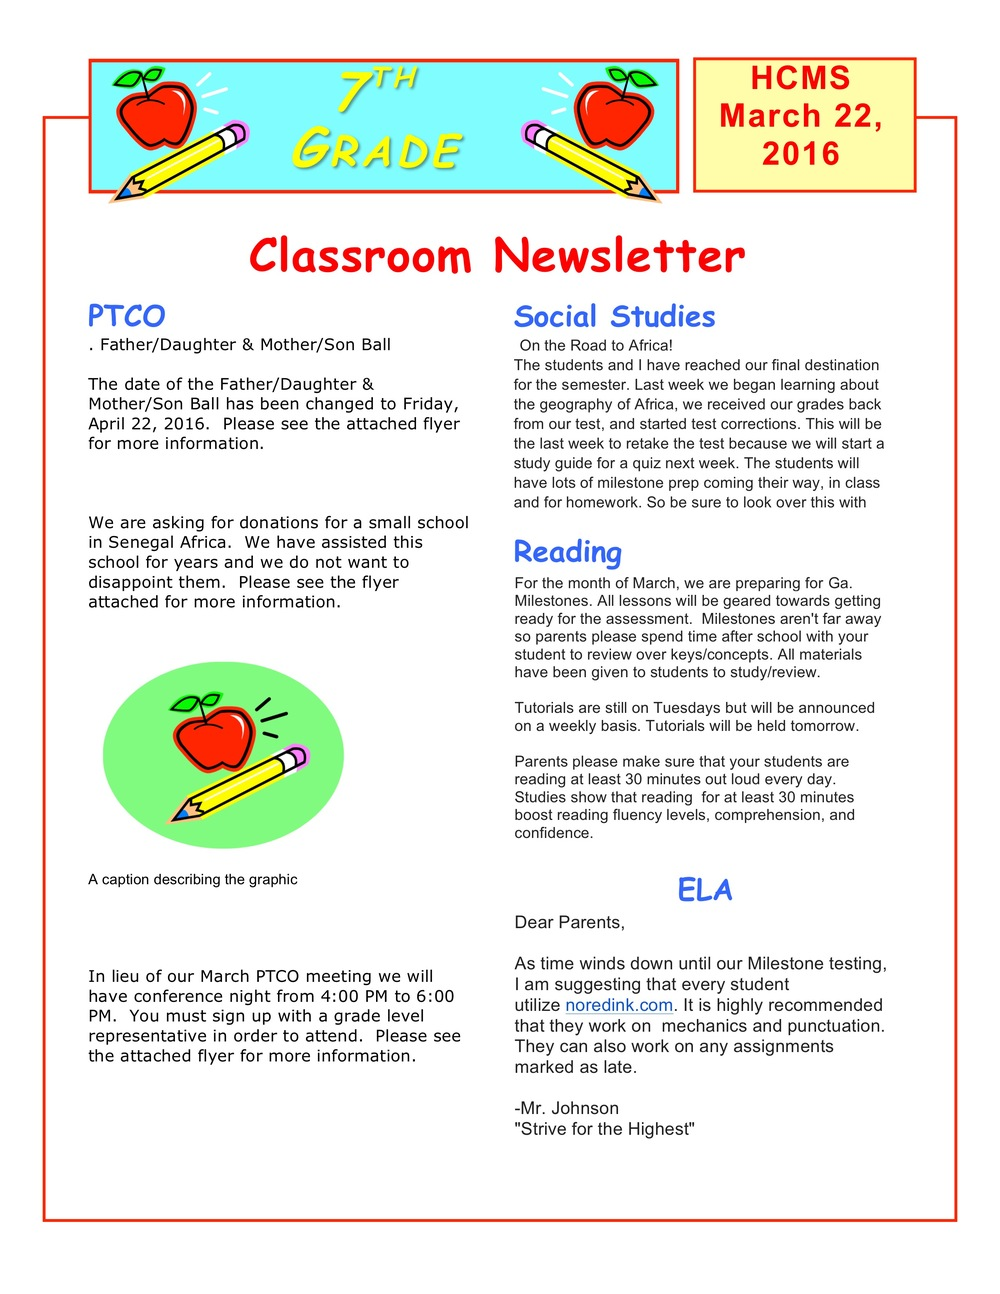 Newsletter Image7th grade 3-23-16.jpeg